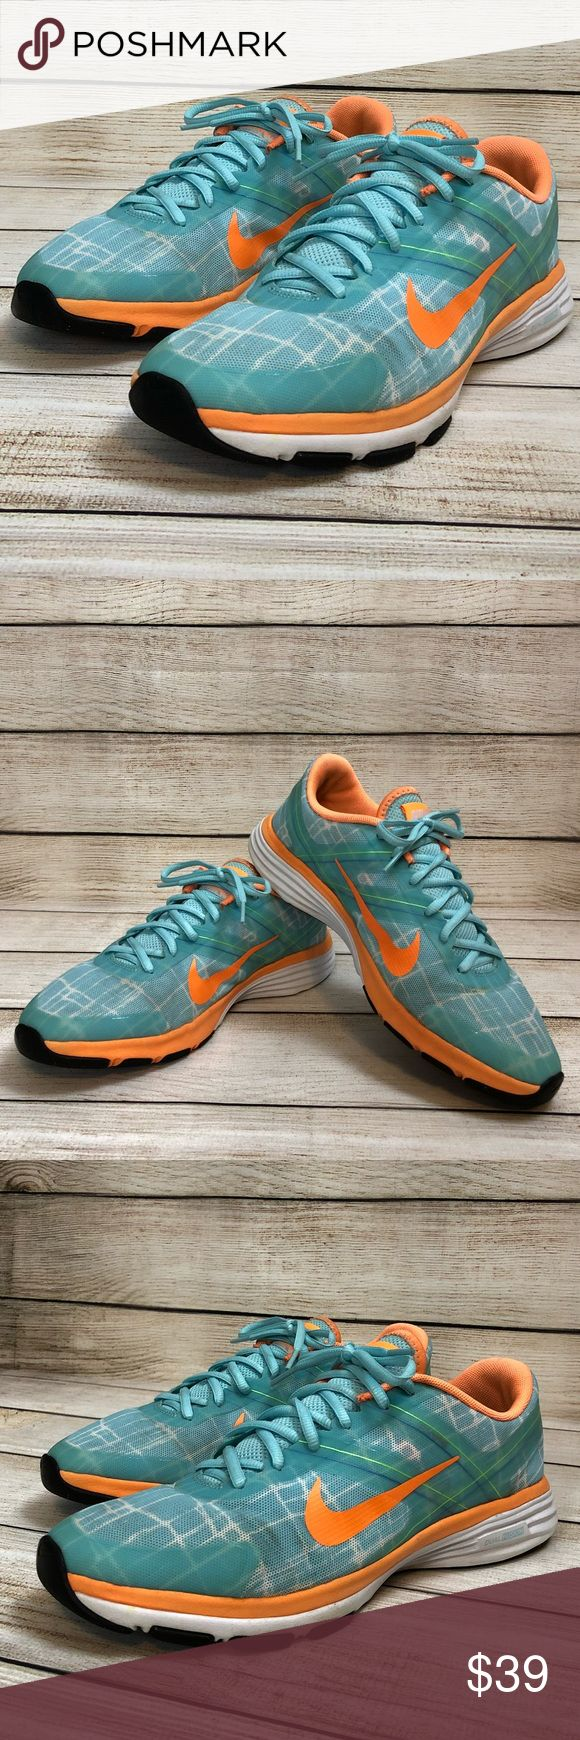 NIKE  Dual Fusion FlyWire Training Shoe Sz9 NIKE  Dual Fusion FlyWire Training Shoe  Size 9  Super Light and comfy   Pre-loved in excellent condition Nike Shoes Sneakers